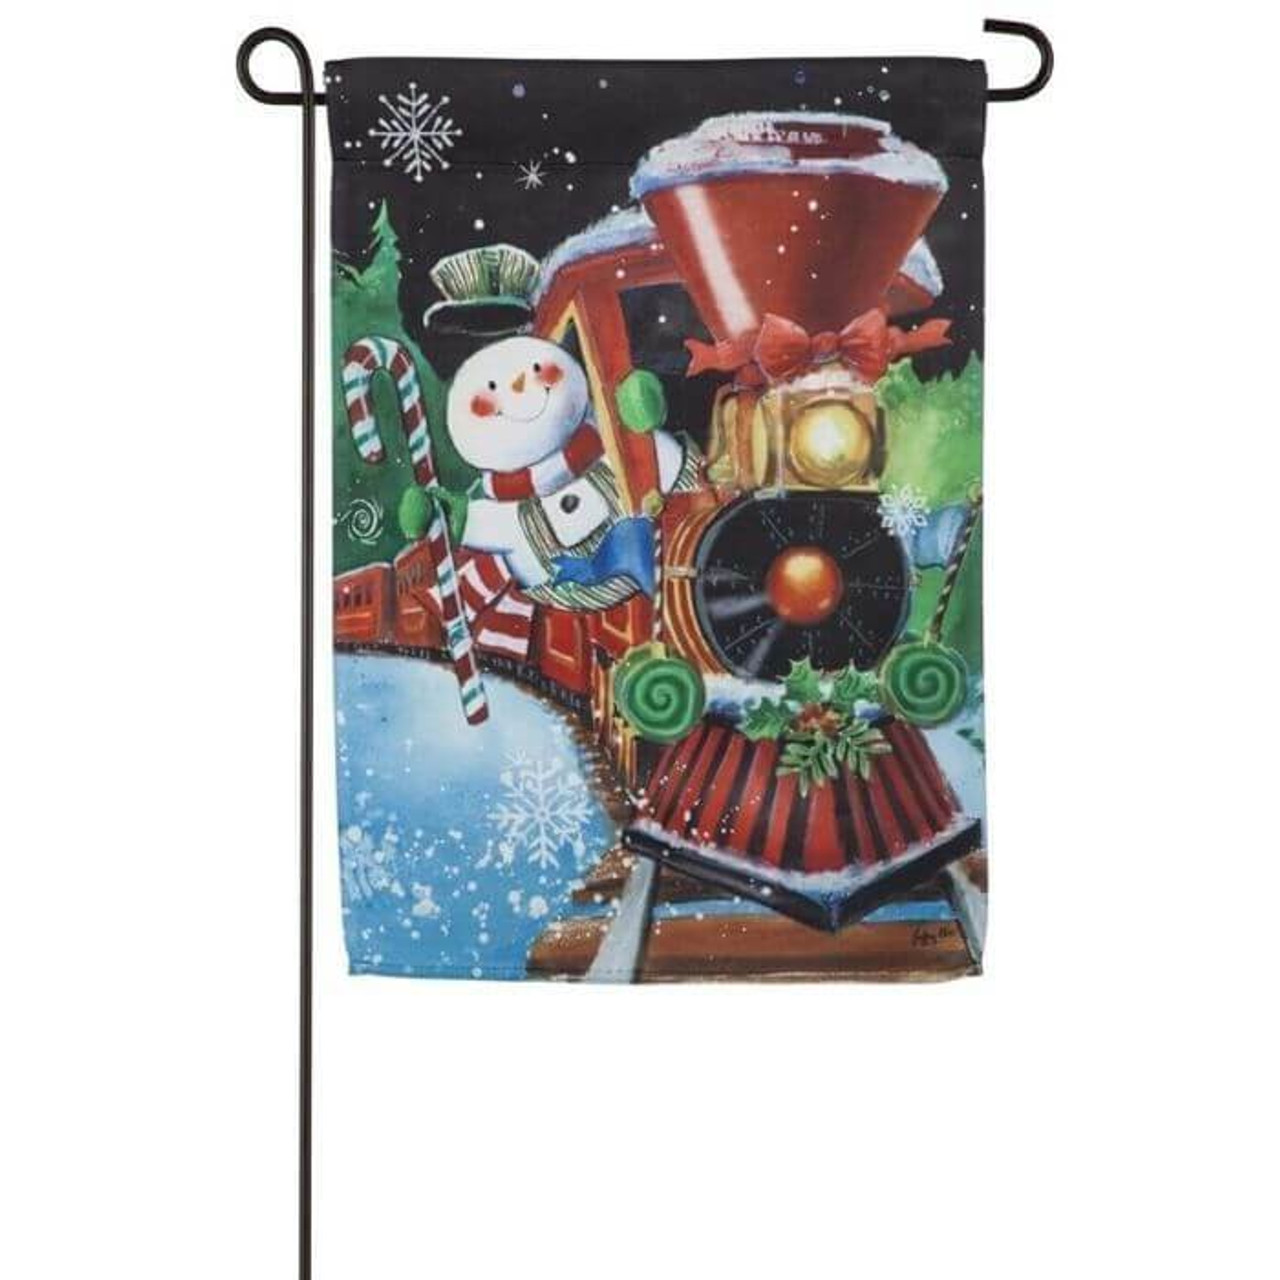 This festive garden flag is a picture of a snowman train conductor riding a red train decorative with red bows, mistletoe, and candy canes. There are trees in the background set on a dark night sky with snowflakes falling.